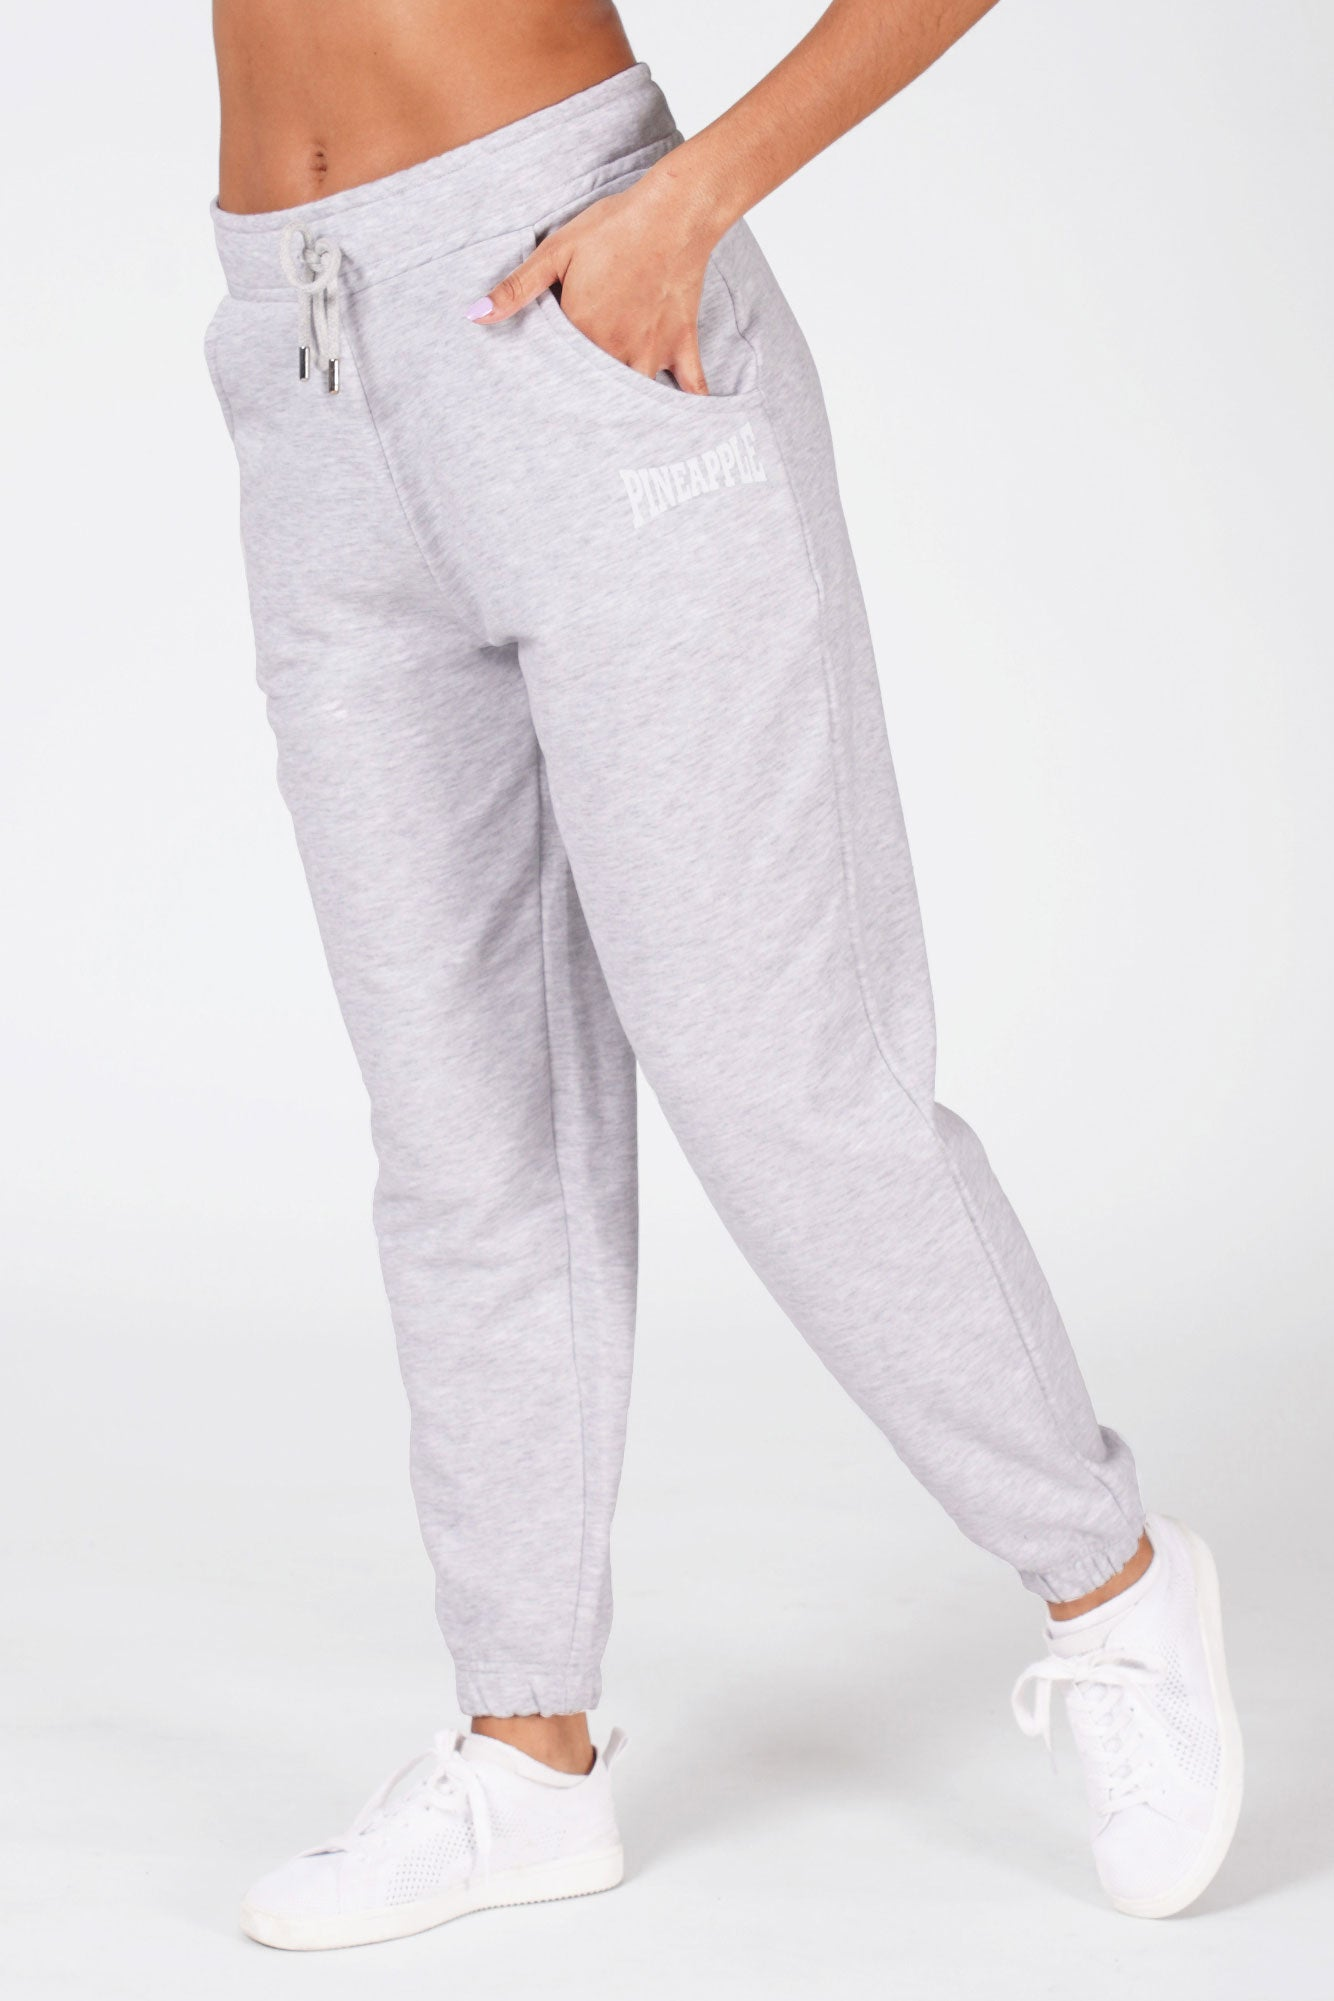 Woman wearing grey Pineapple oversized pocket joggers.